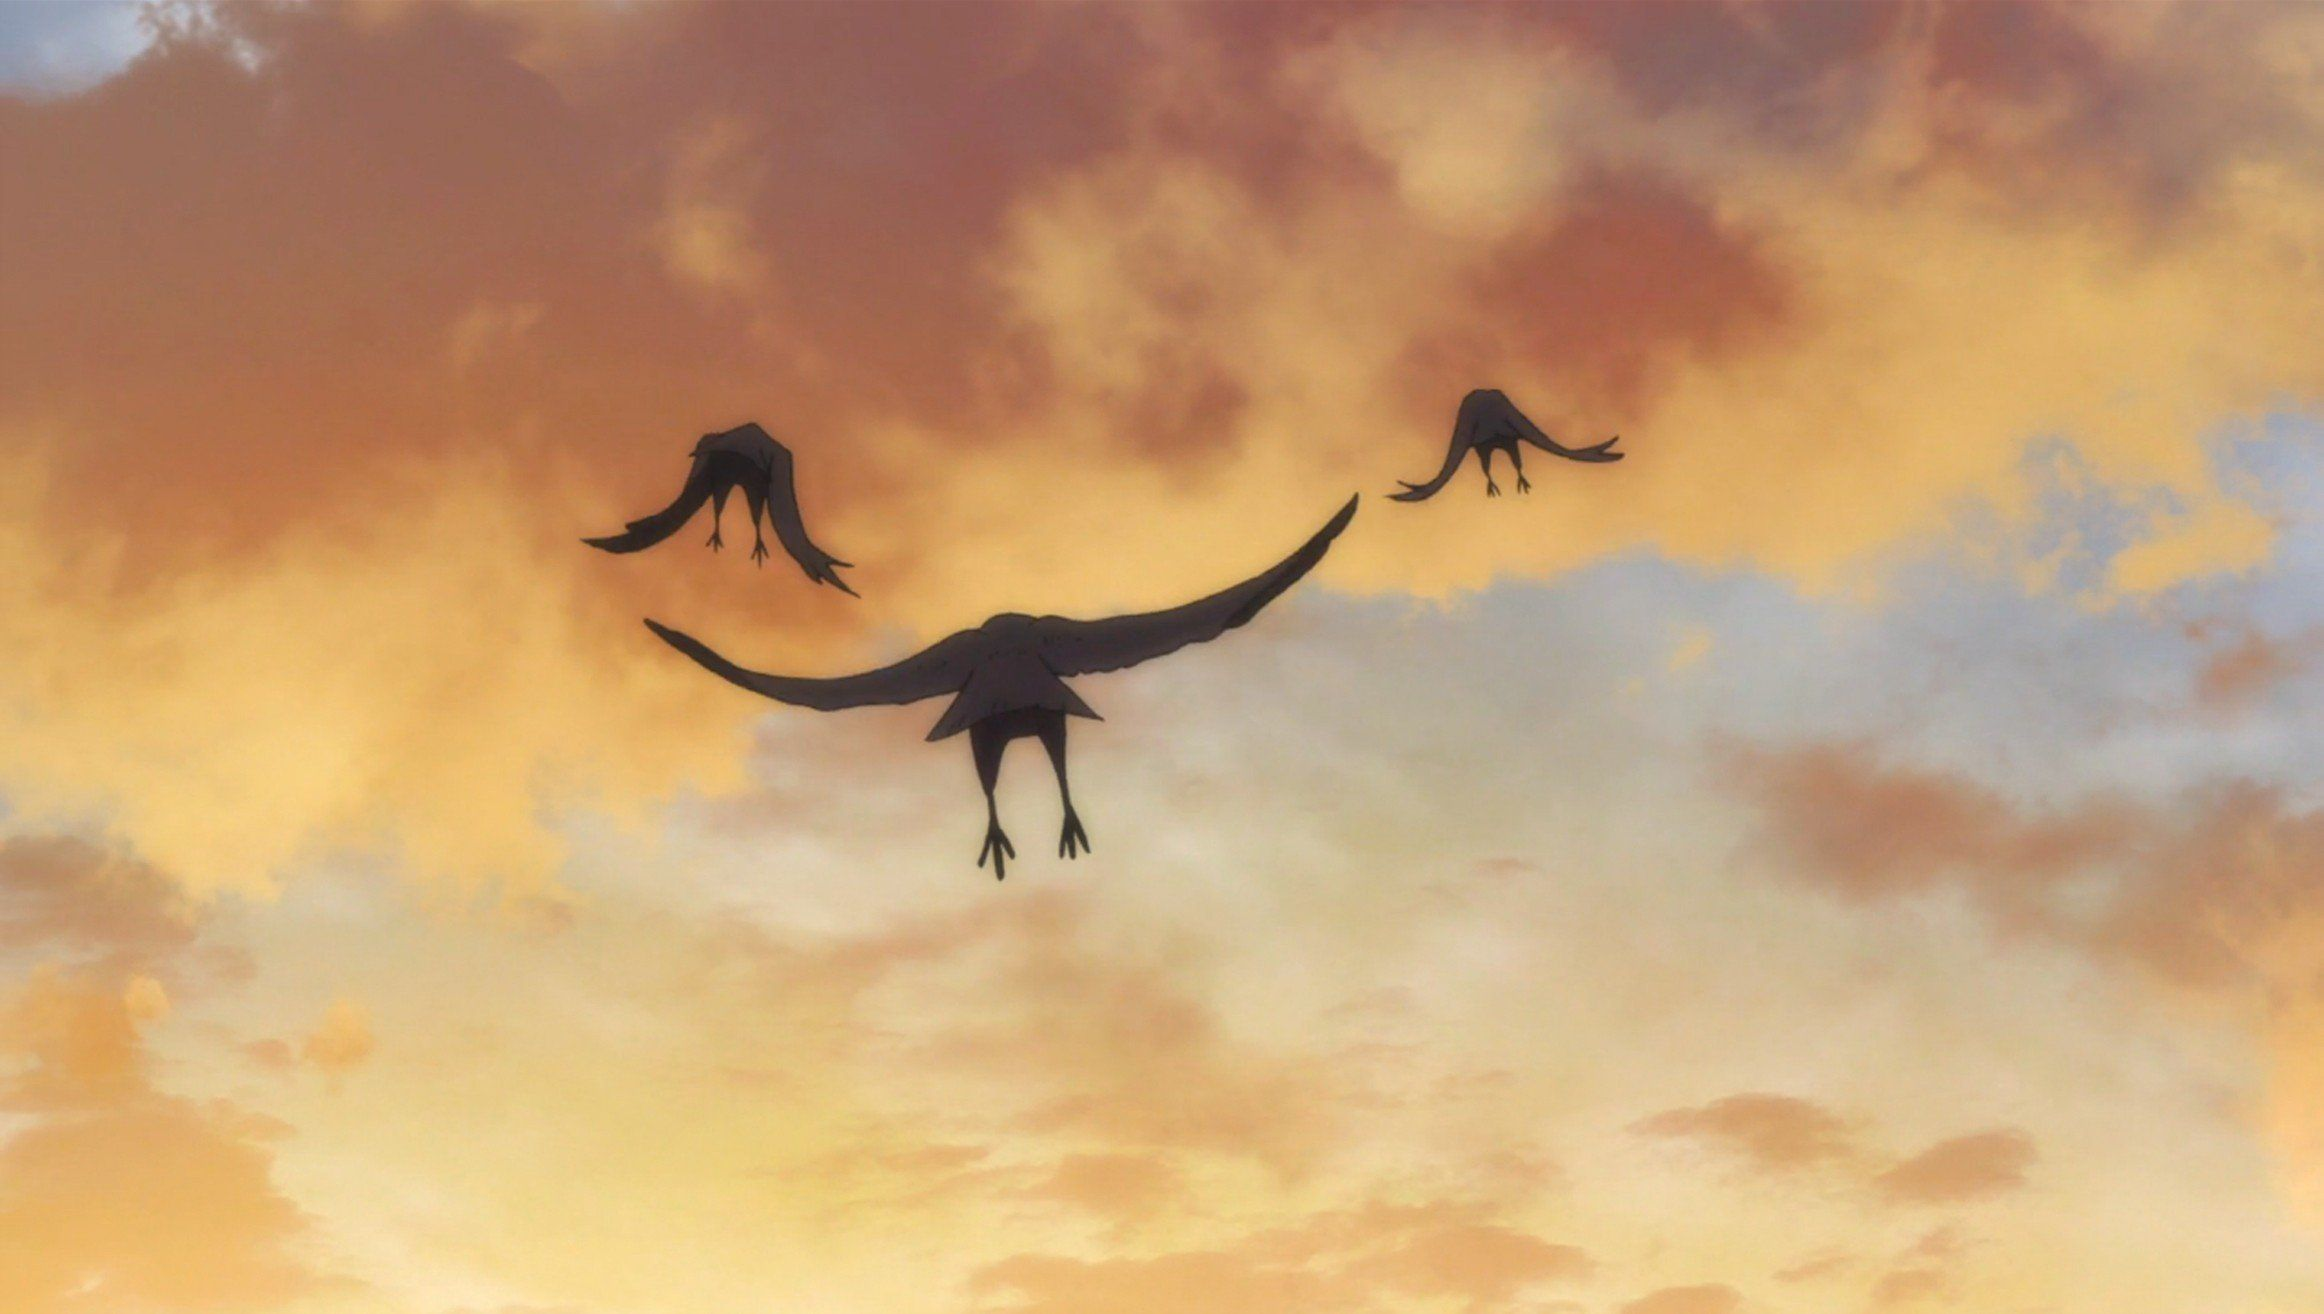 Download 464404 Haikyuu Crow Anime Anime Art Hd Wallpapers You Can Download This Image High Resolution Hd In 2021 Haikyuu Wallpaper Anime Cover Photo Anime Art